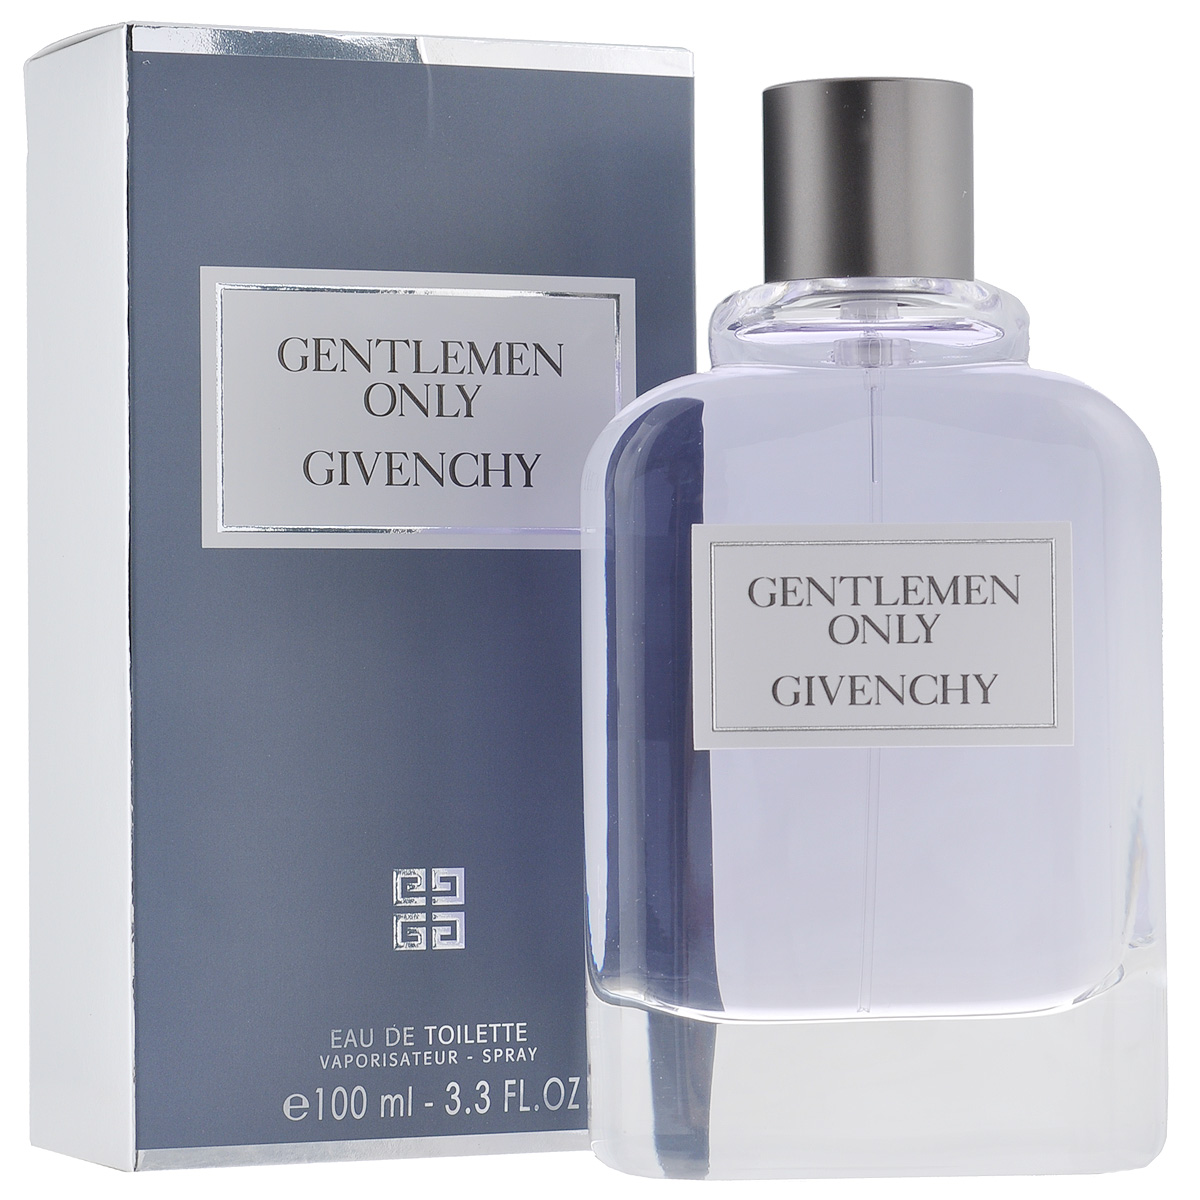 Givenchy GENTLEMAN ONLY men